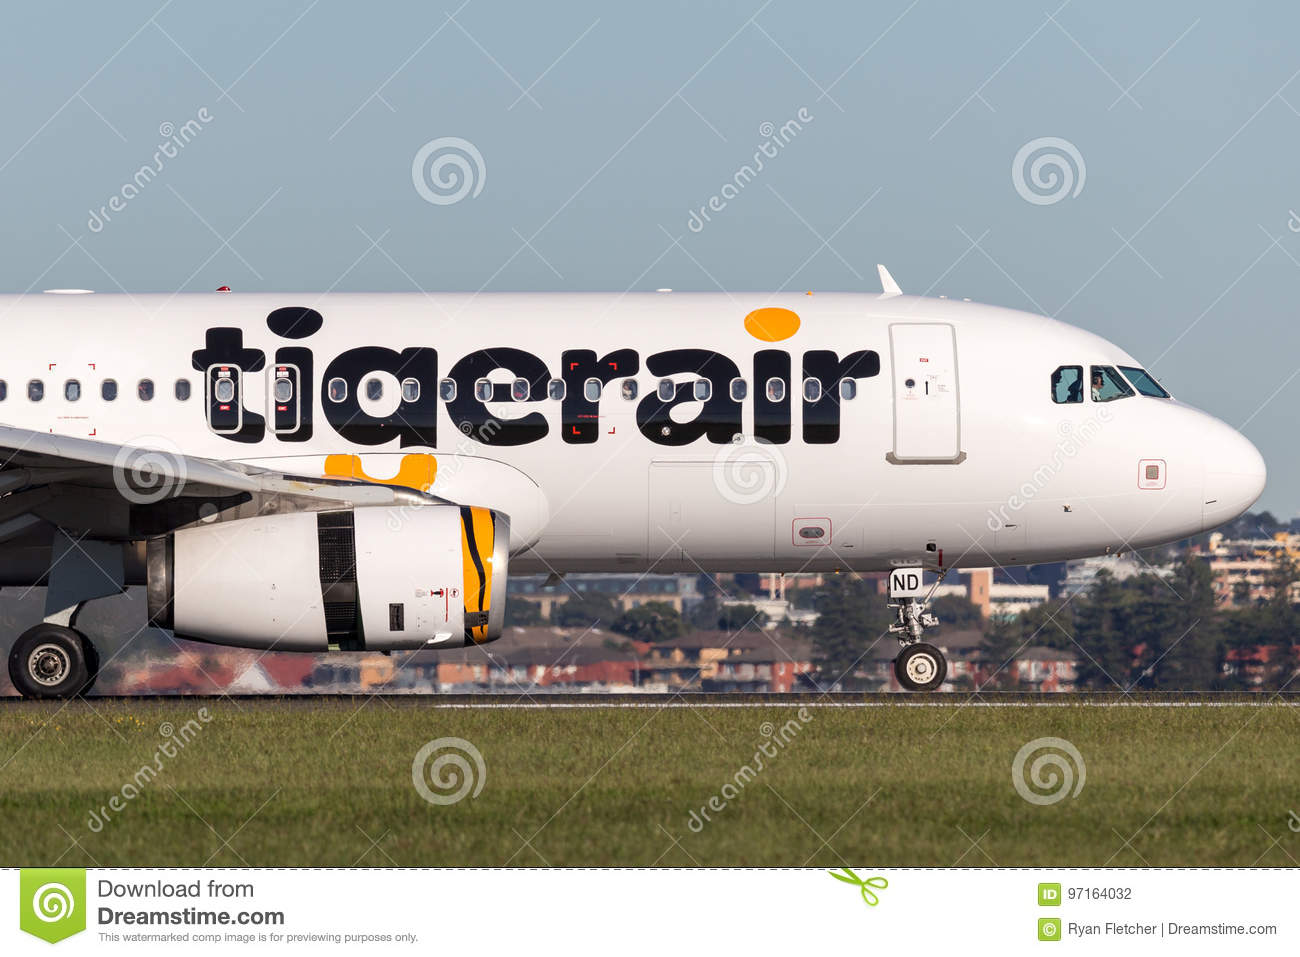 Tiger Airways Tigerair Airbus A320 aircraft at Sydney Airport.